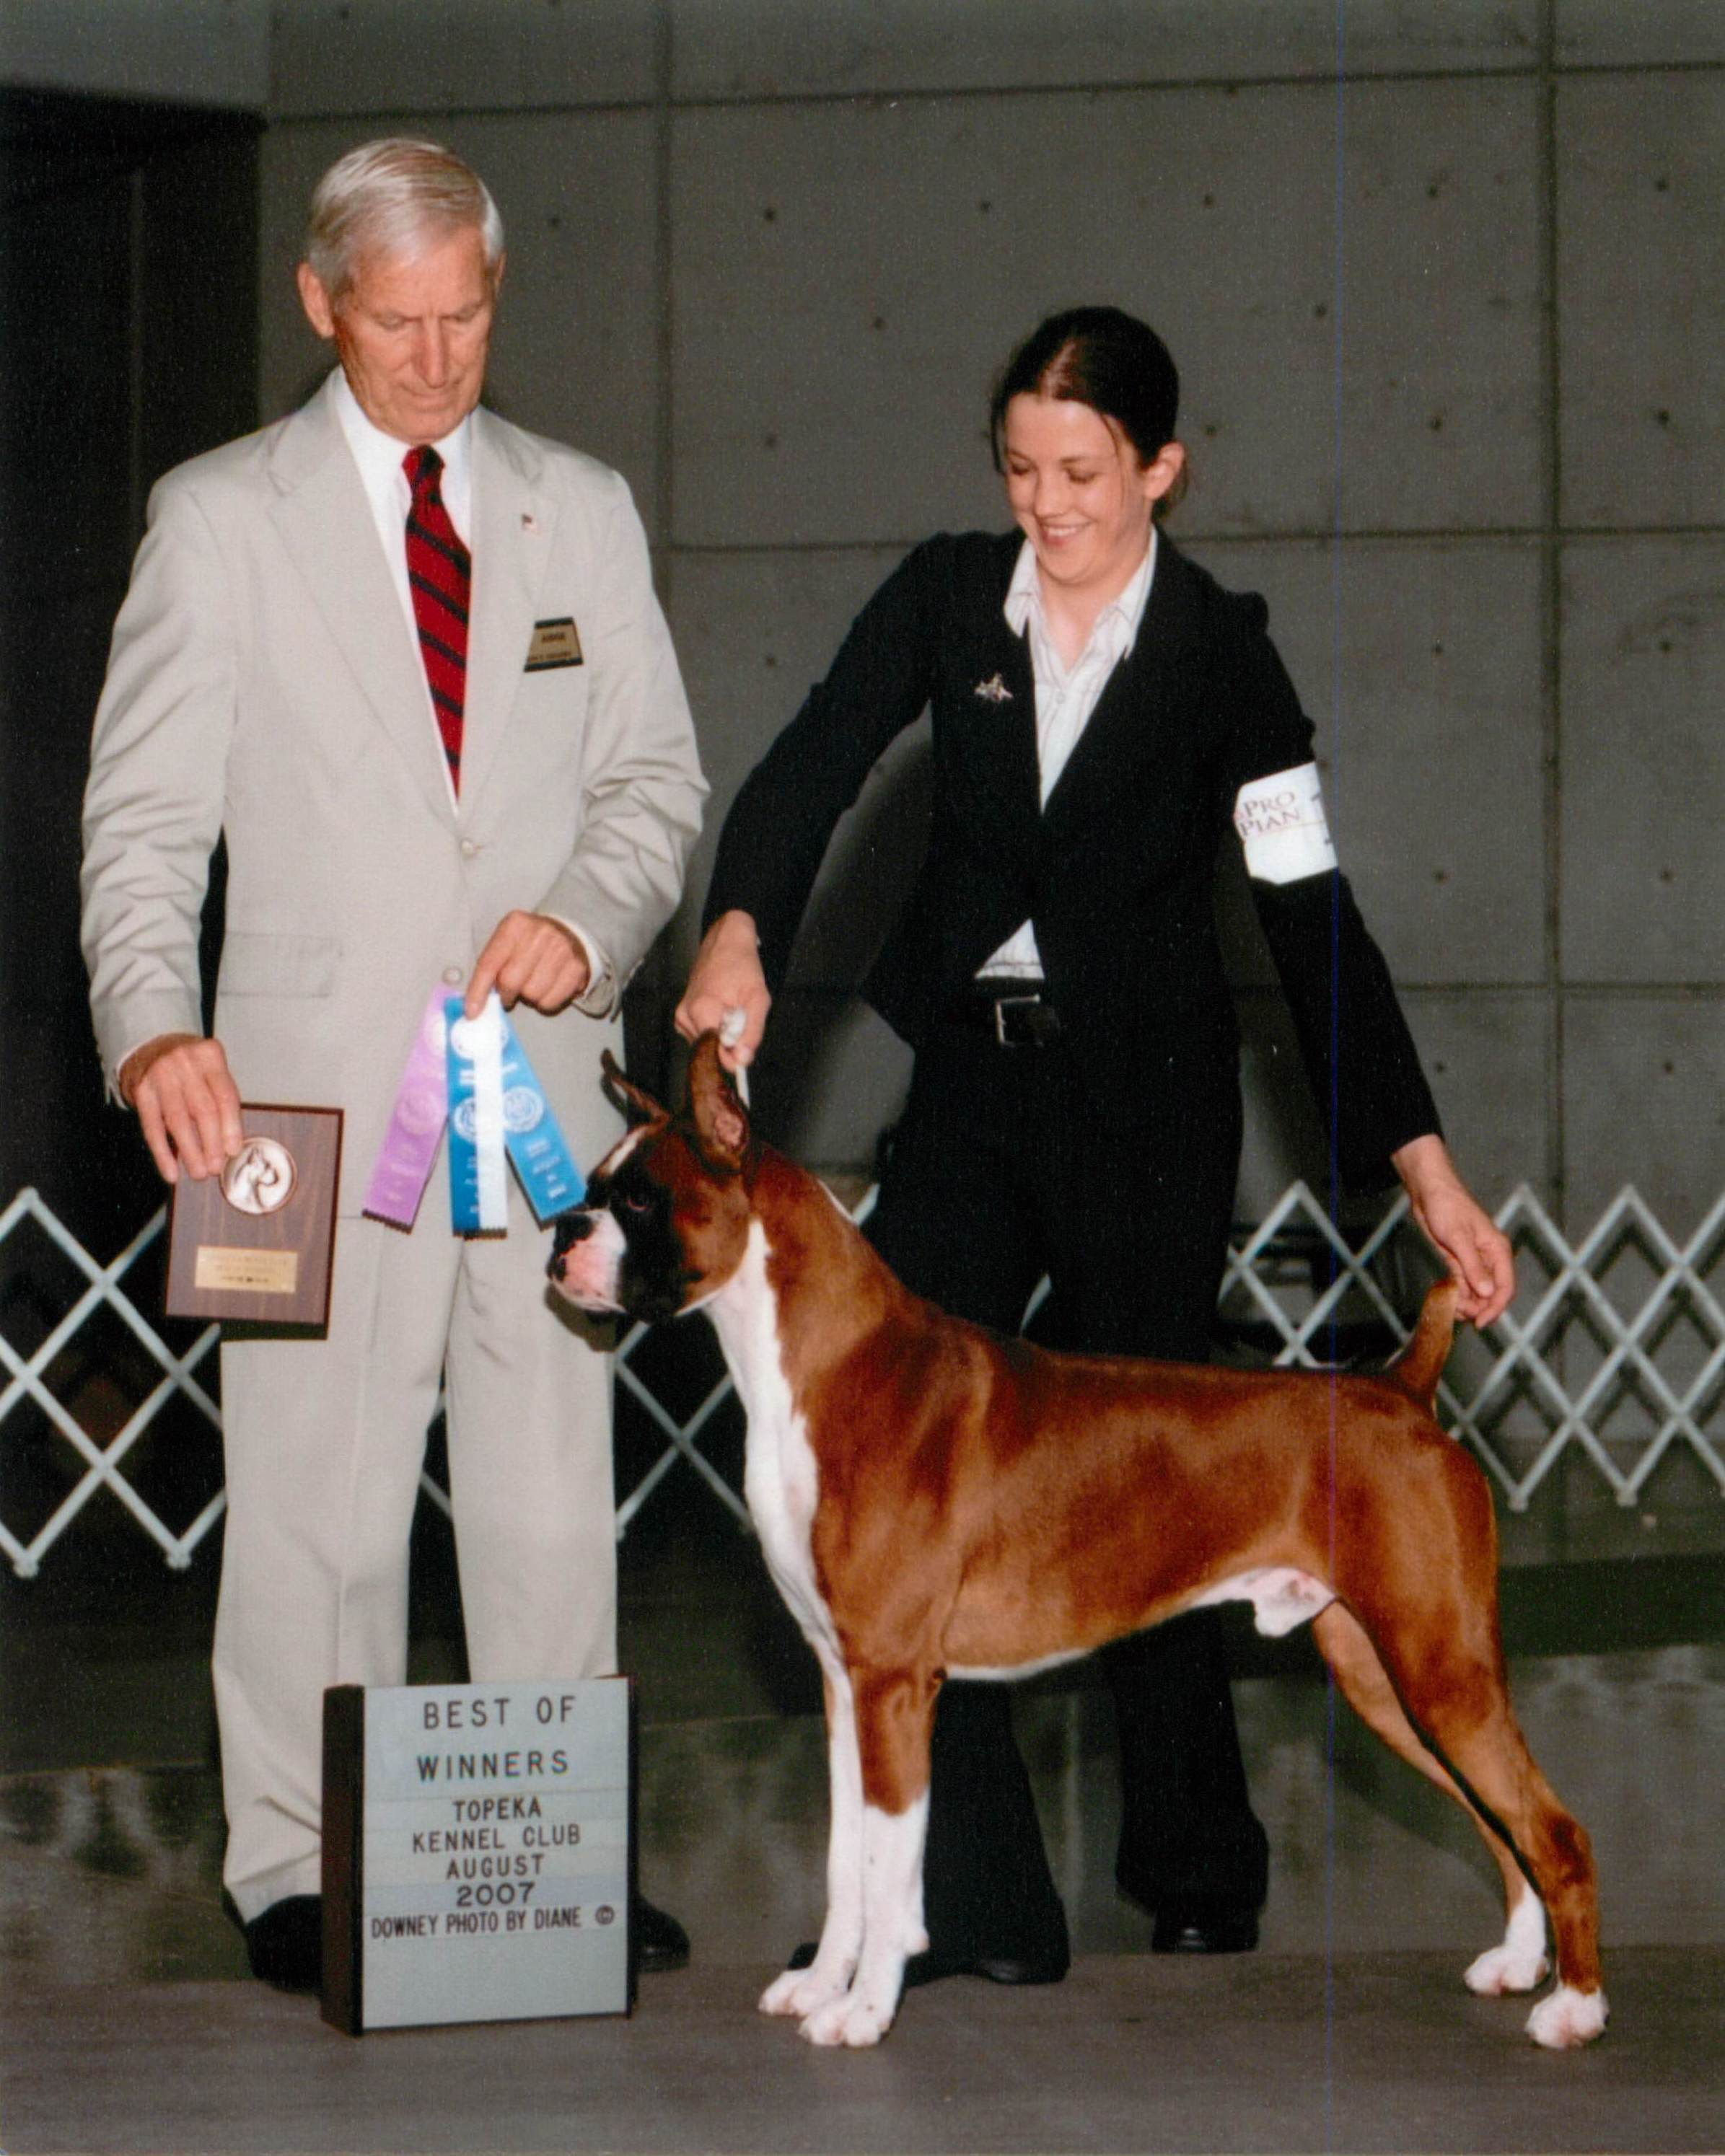 Best of Winners & Winners Dog @ 2007 Specialty Show #2